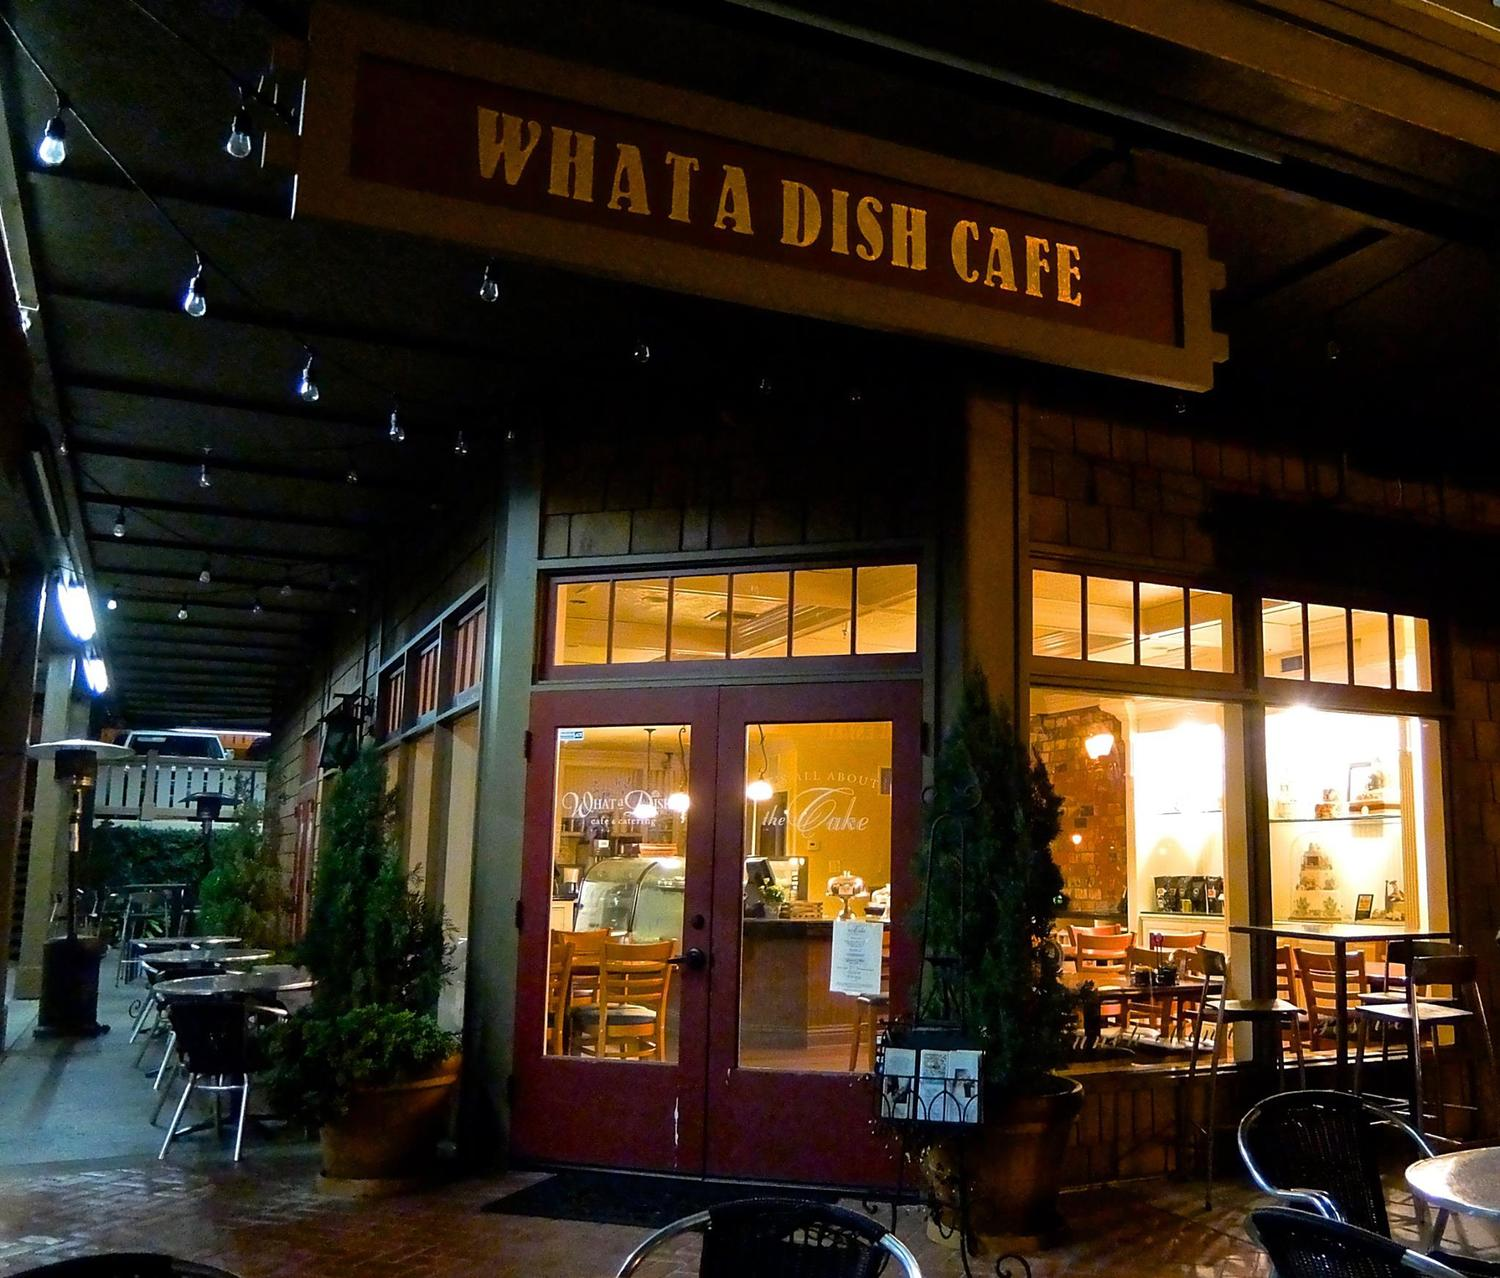 Reservations — WhataDish Cafe Bistro & Catering